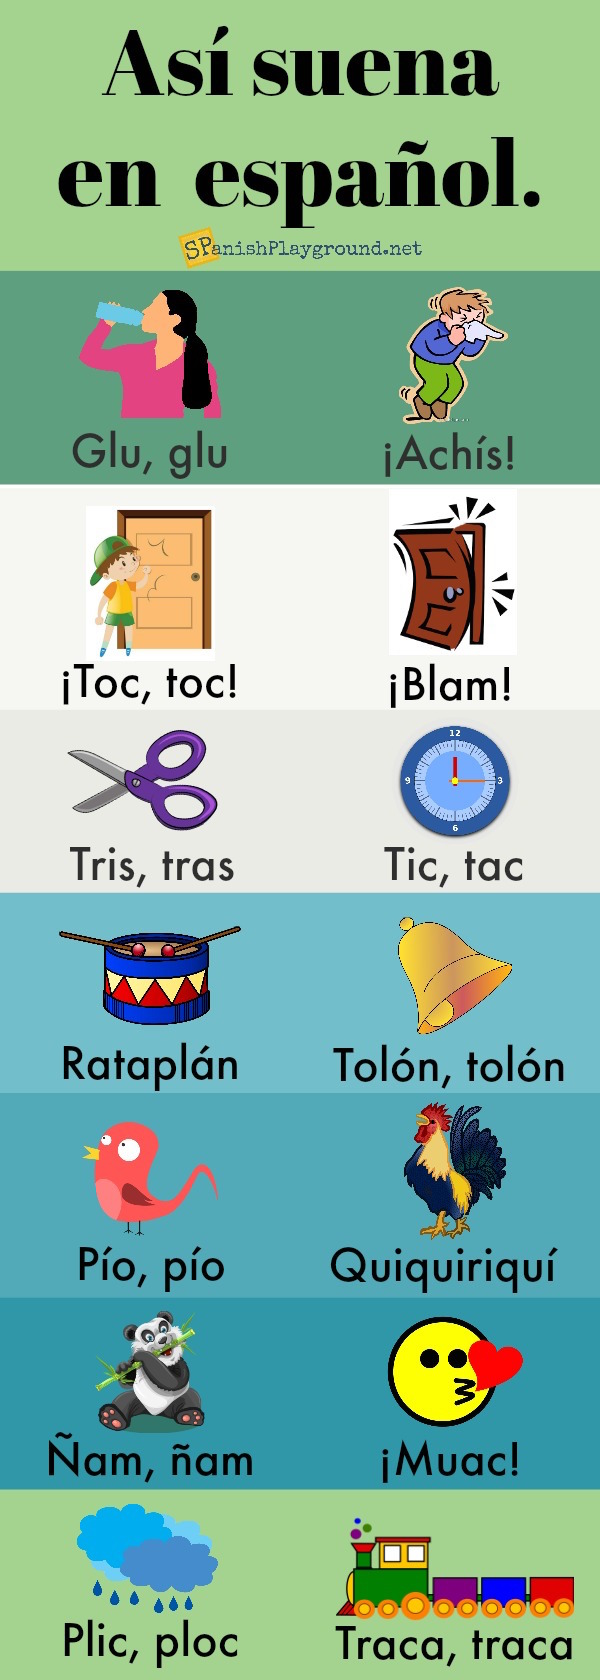 Spanish onomatopoeia are a fun way to teach vocabulary and culture to kids.